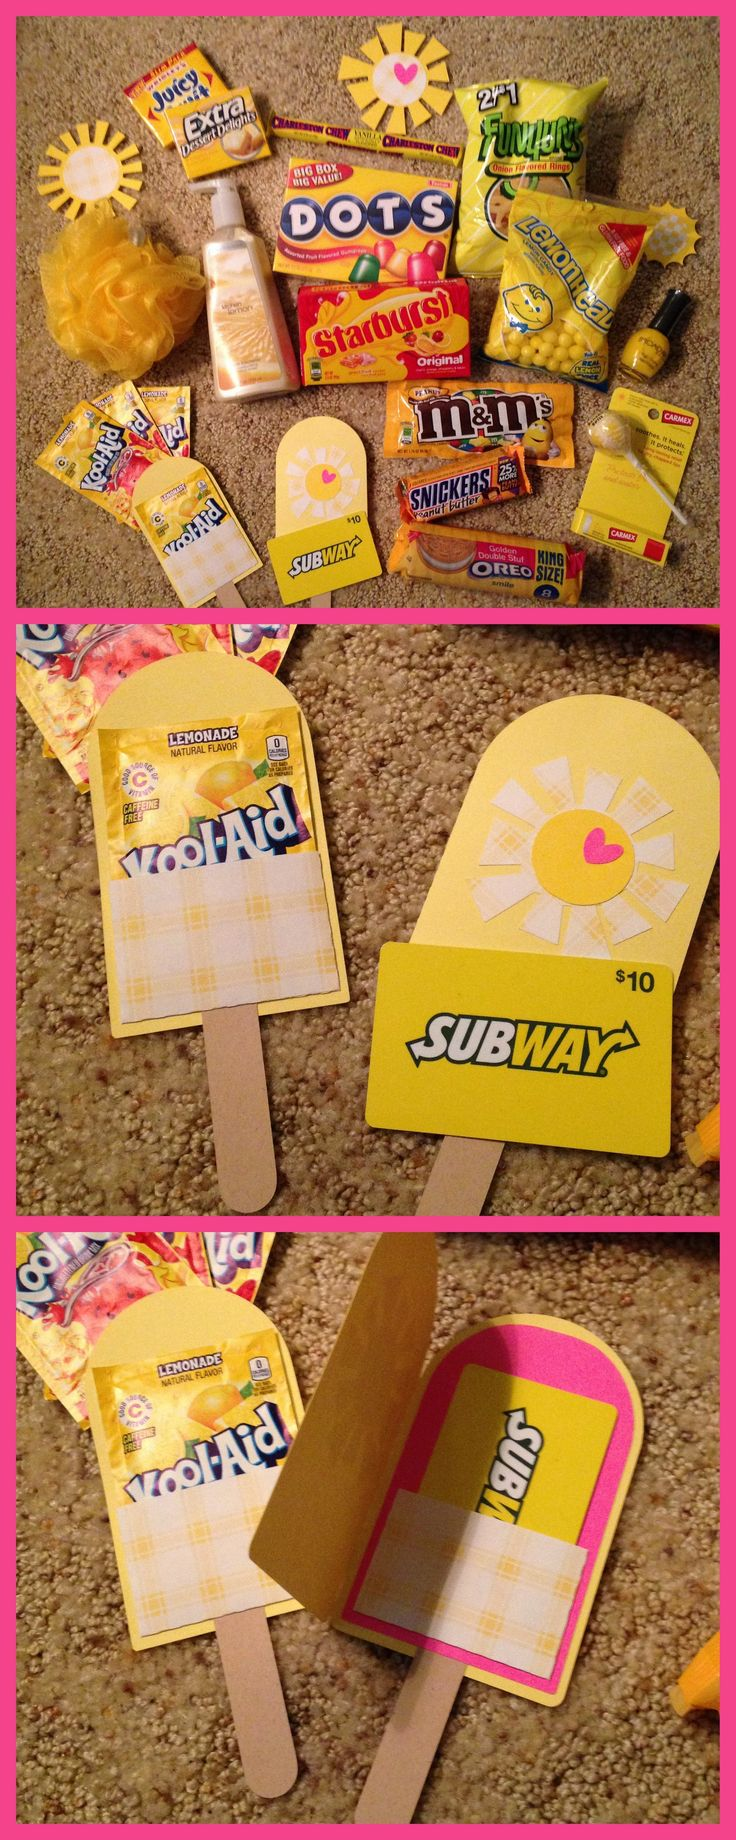 """Box of Sunshine ~ Sent to my Bestie :) Items included:  2 packs of Gum, Dots, Charleston Chew, Kool-Aid, Lemon Hand Soap, Funyuns, Lemon Heads, Starbursts, Bath Scrubbie,  M&Ms, Snickers, lip balm, nail polish, vanilla Oreos, sucker & Subway gift card.  Added paper suns, yellow shreds and a cutout """"Hello, Sunshine!"""" to the box.  Wrapped box in yellow gift wrap, added suns and mailed it! :)"""